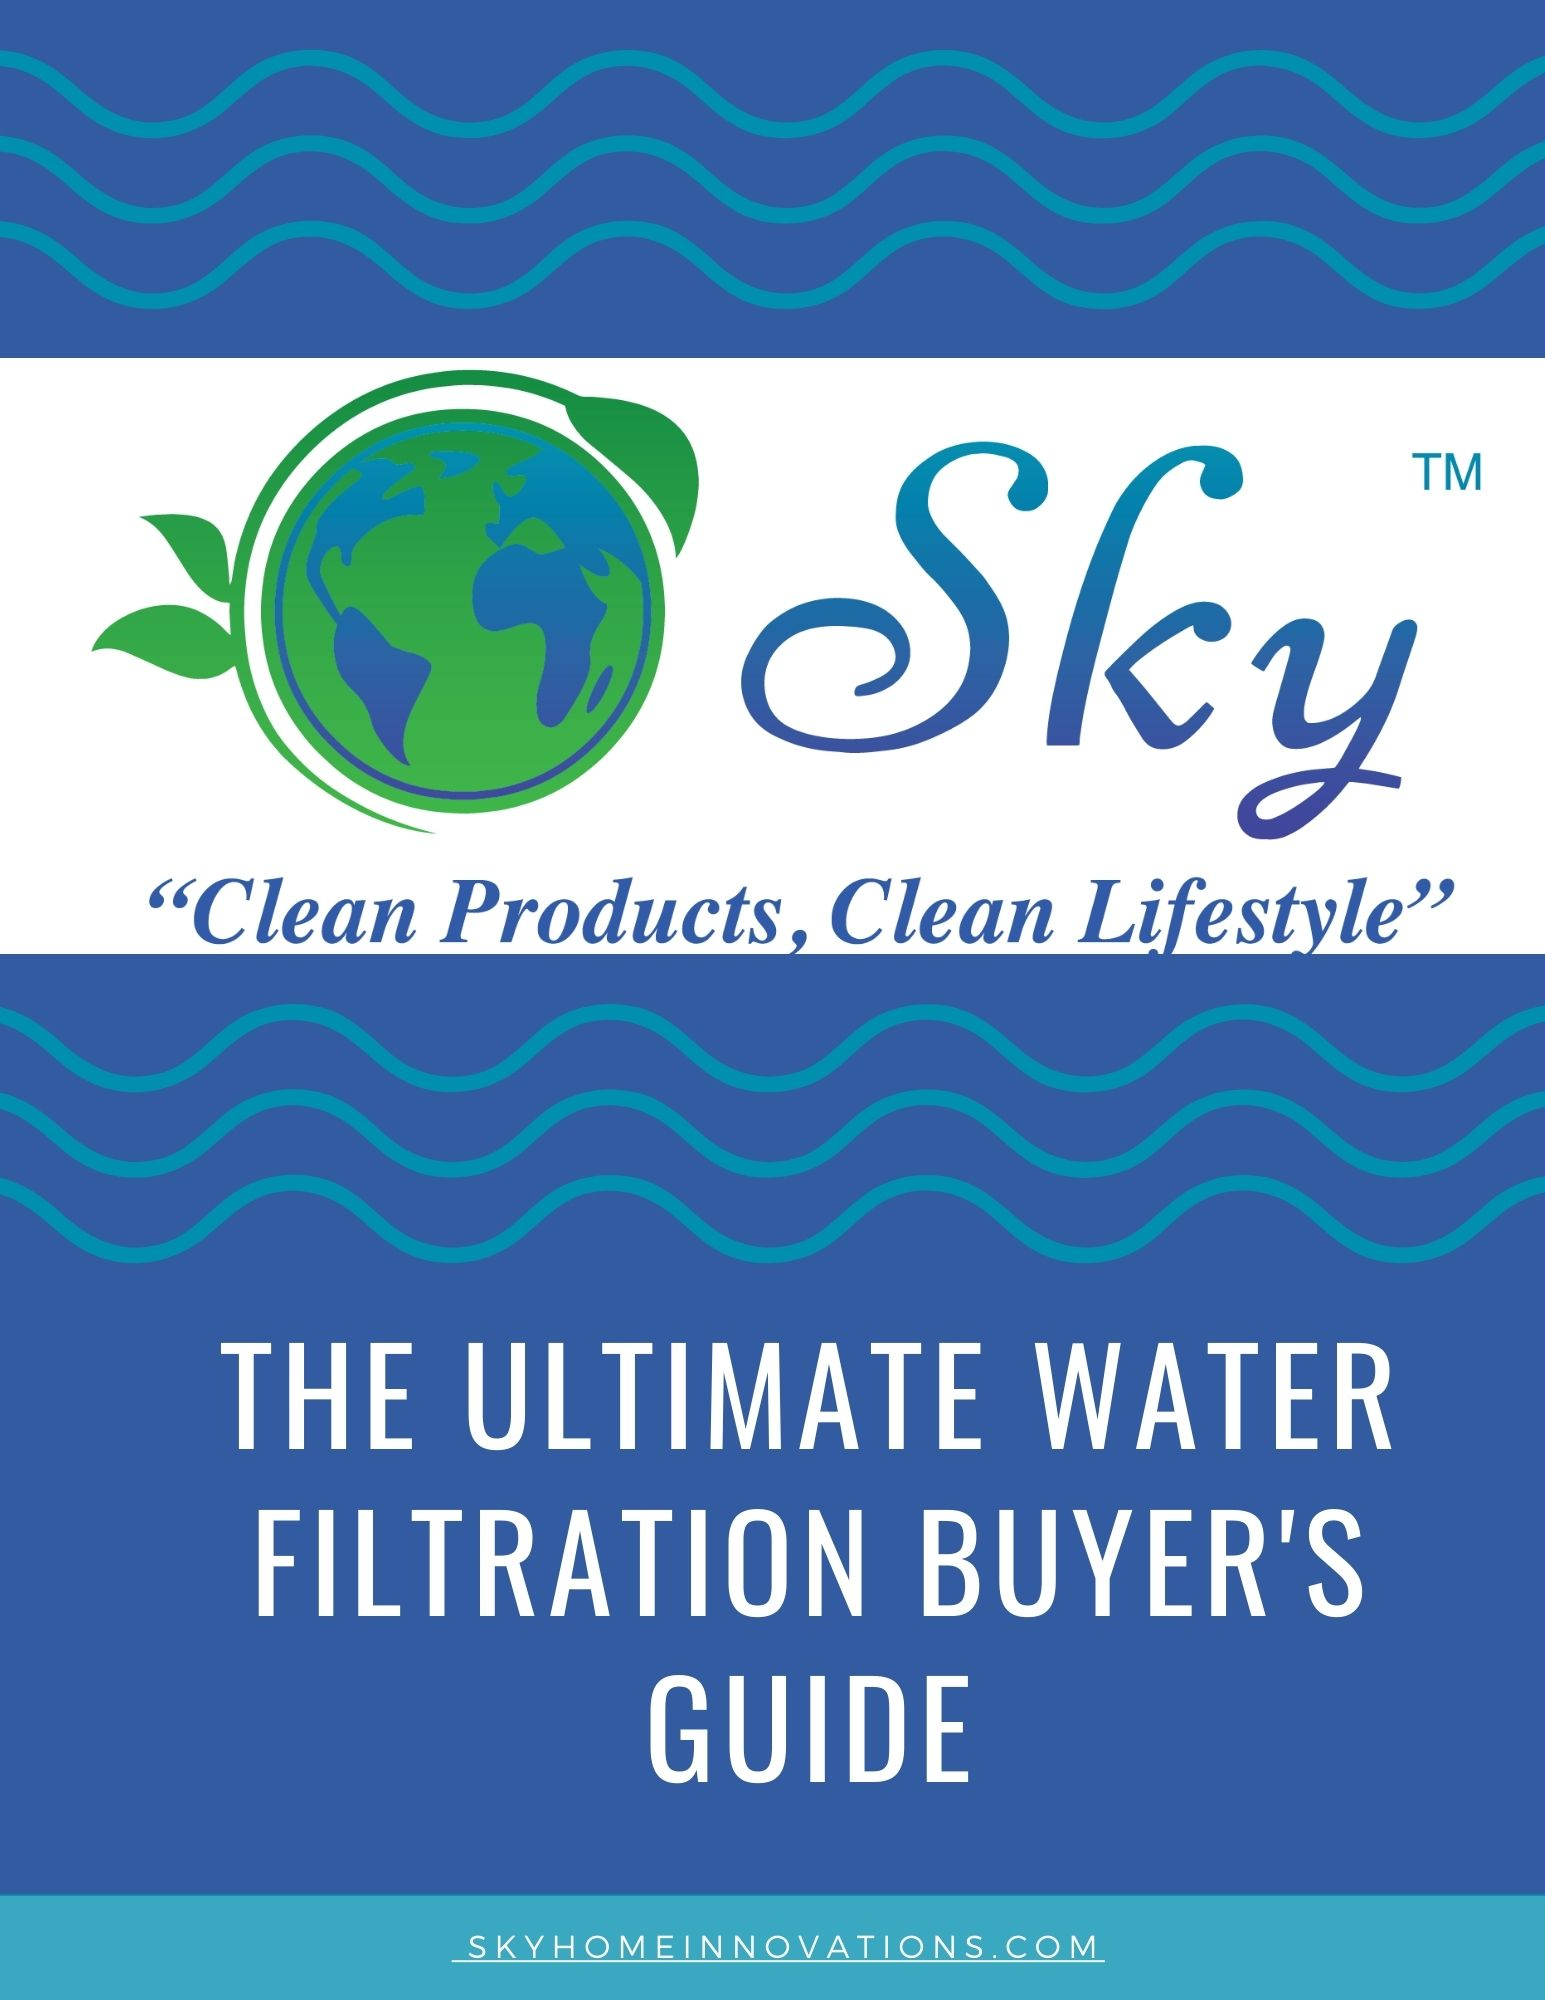 The Ultimate Water Filtration Buyer's Guide